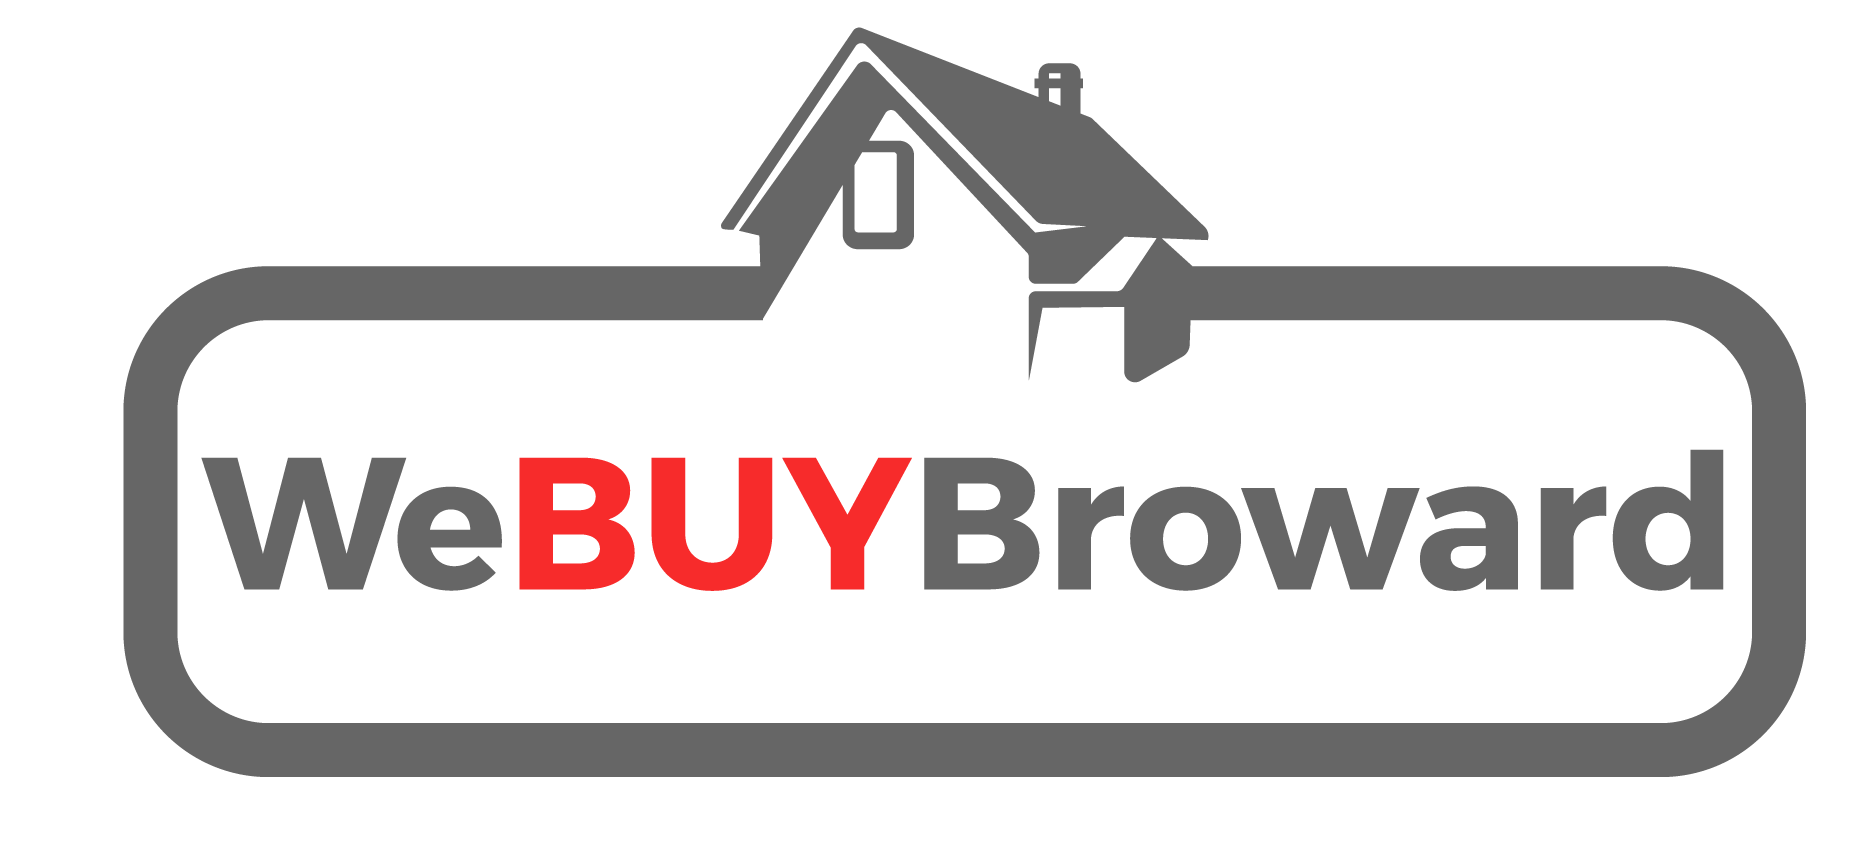 Florida Based Home Buyers Rescue an Absentee Home Owner from Financial Ruin - We Buy Broward